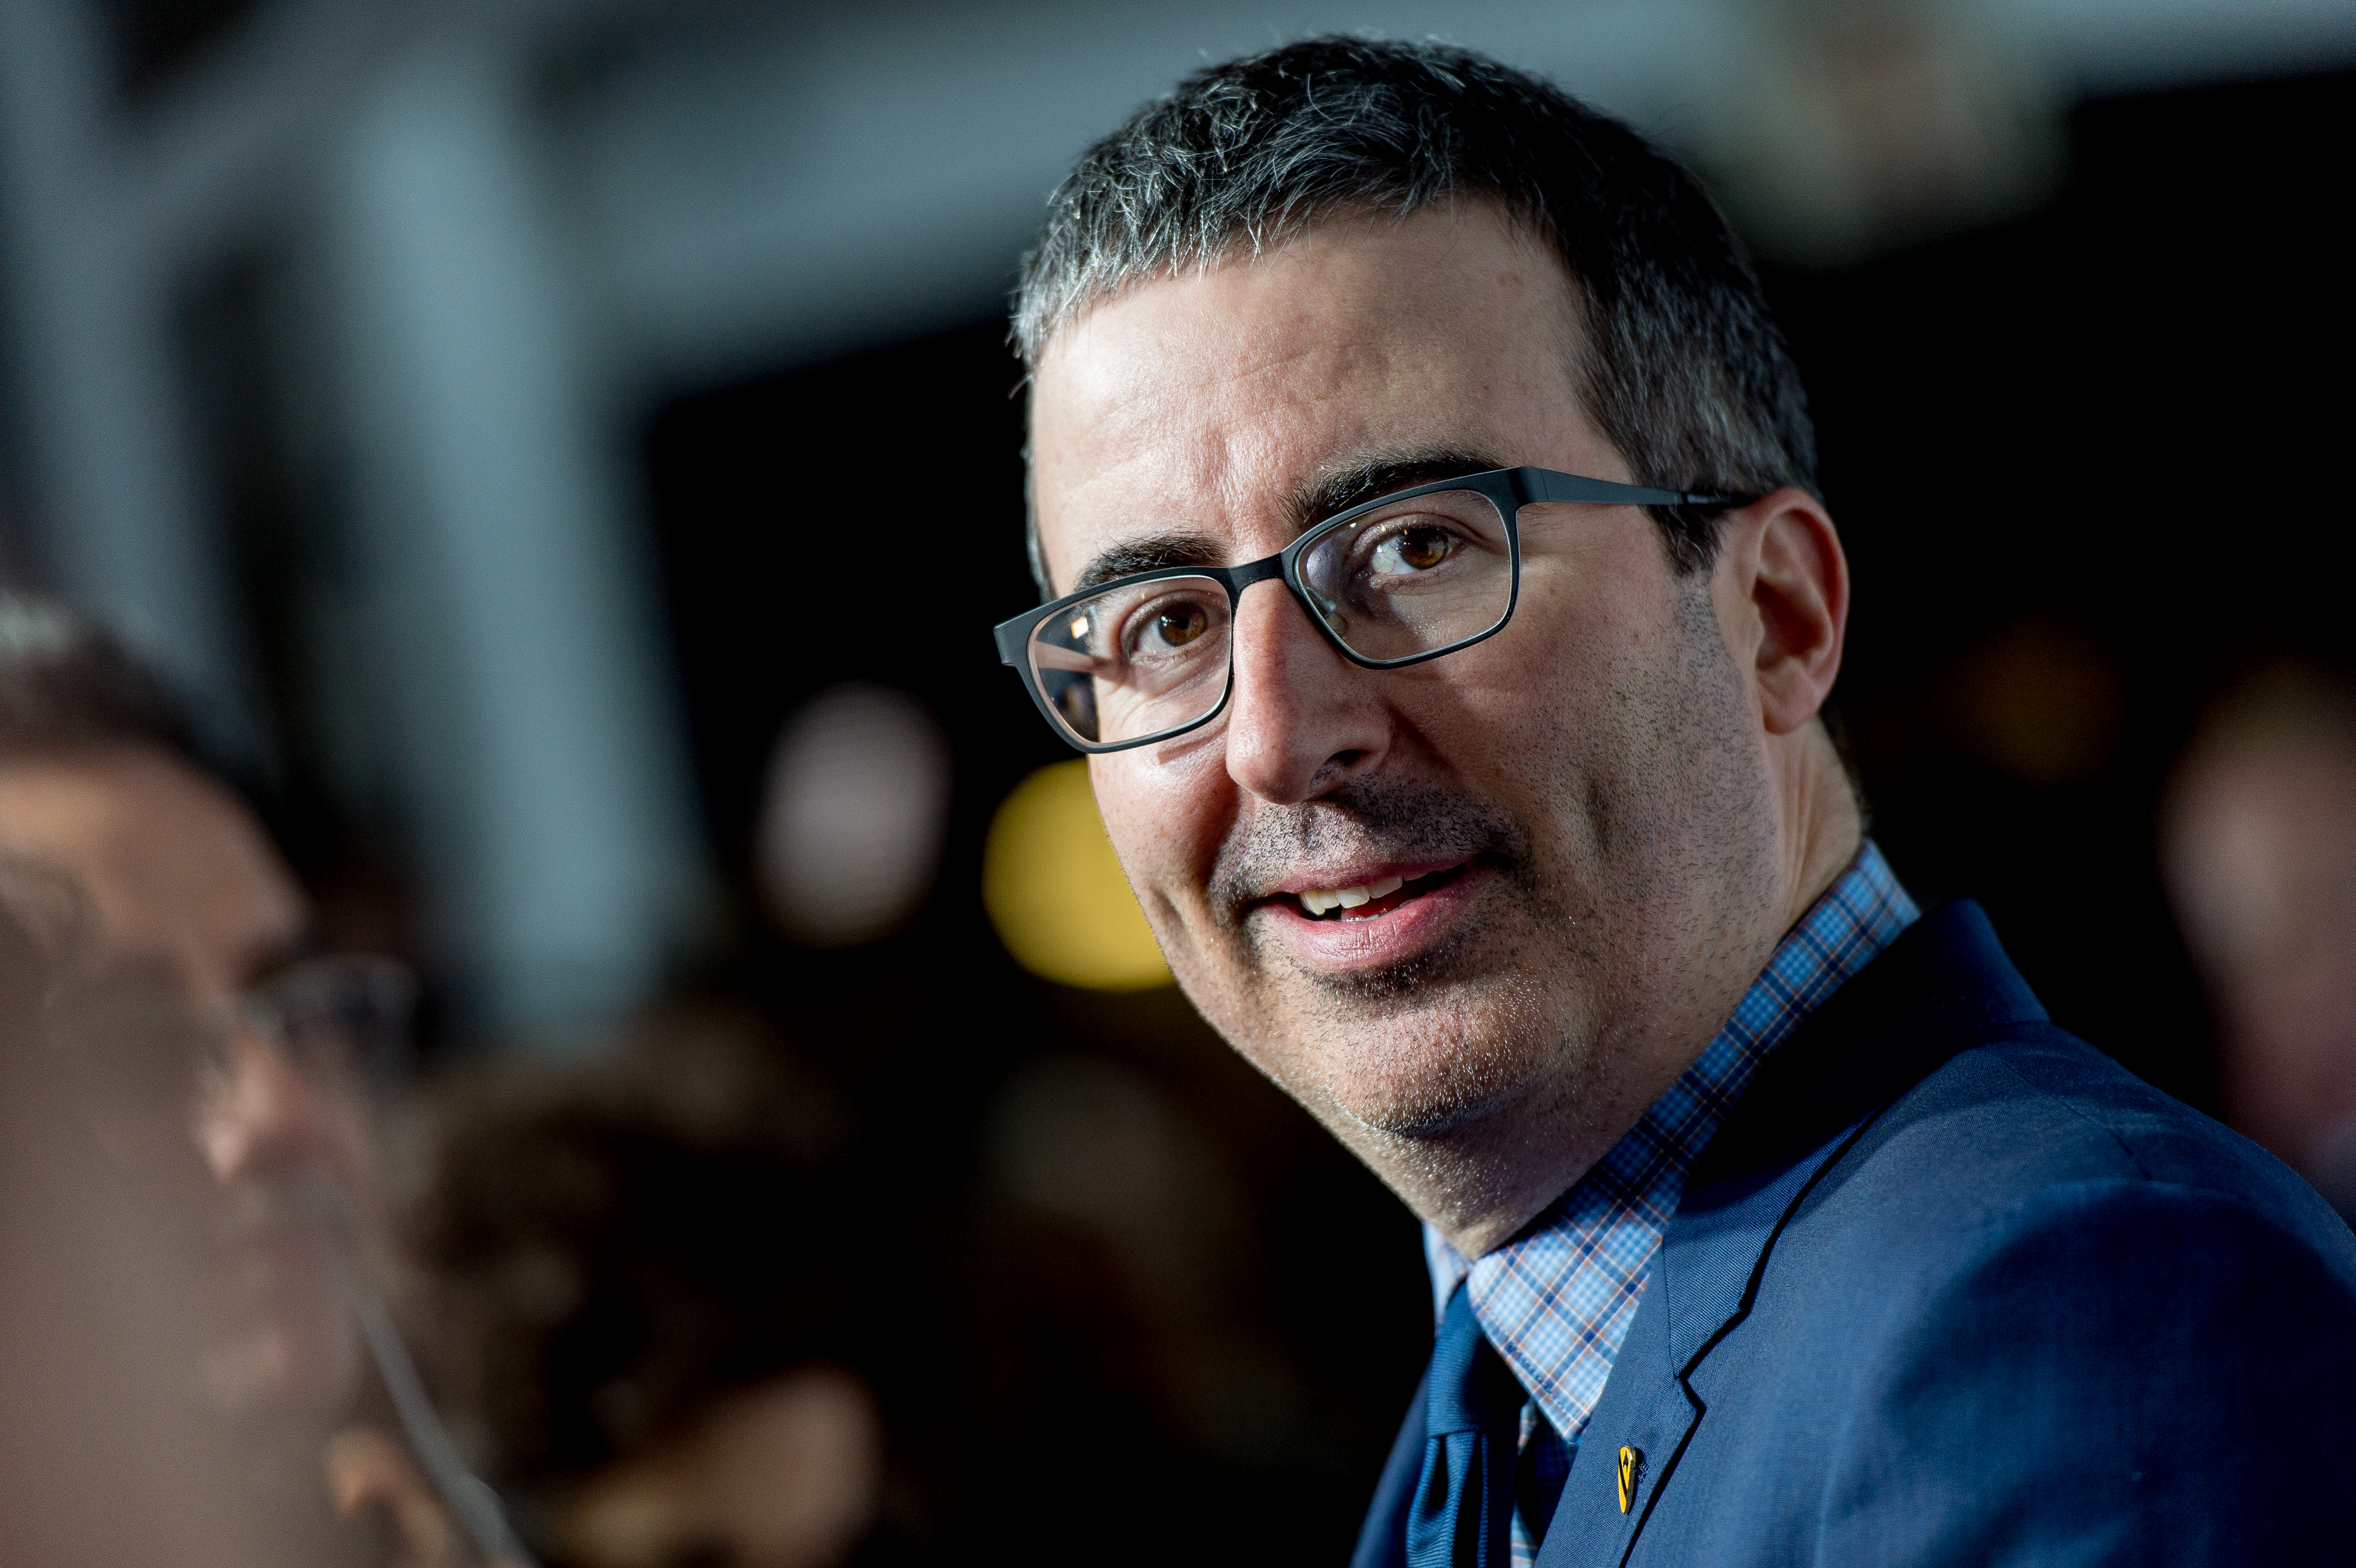 John Oliver attends the 11th Annual Stand Up for Heroes at The Theater at Madison Square Garden on November 7, 2017 in New York City.